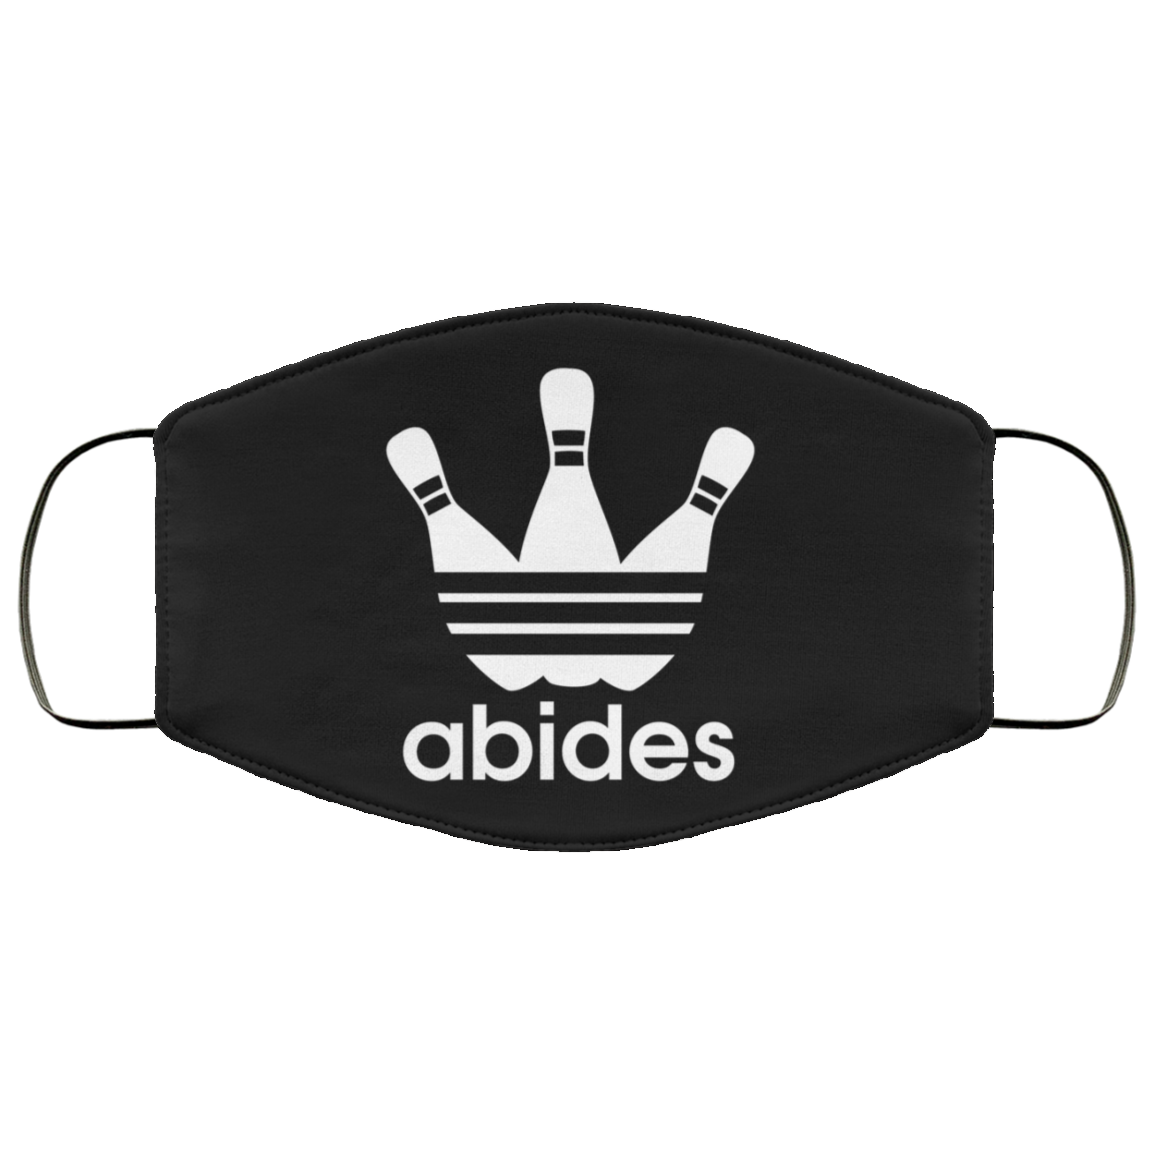 Abides (not Adidas) Face Mask (ear loops)